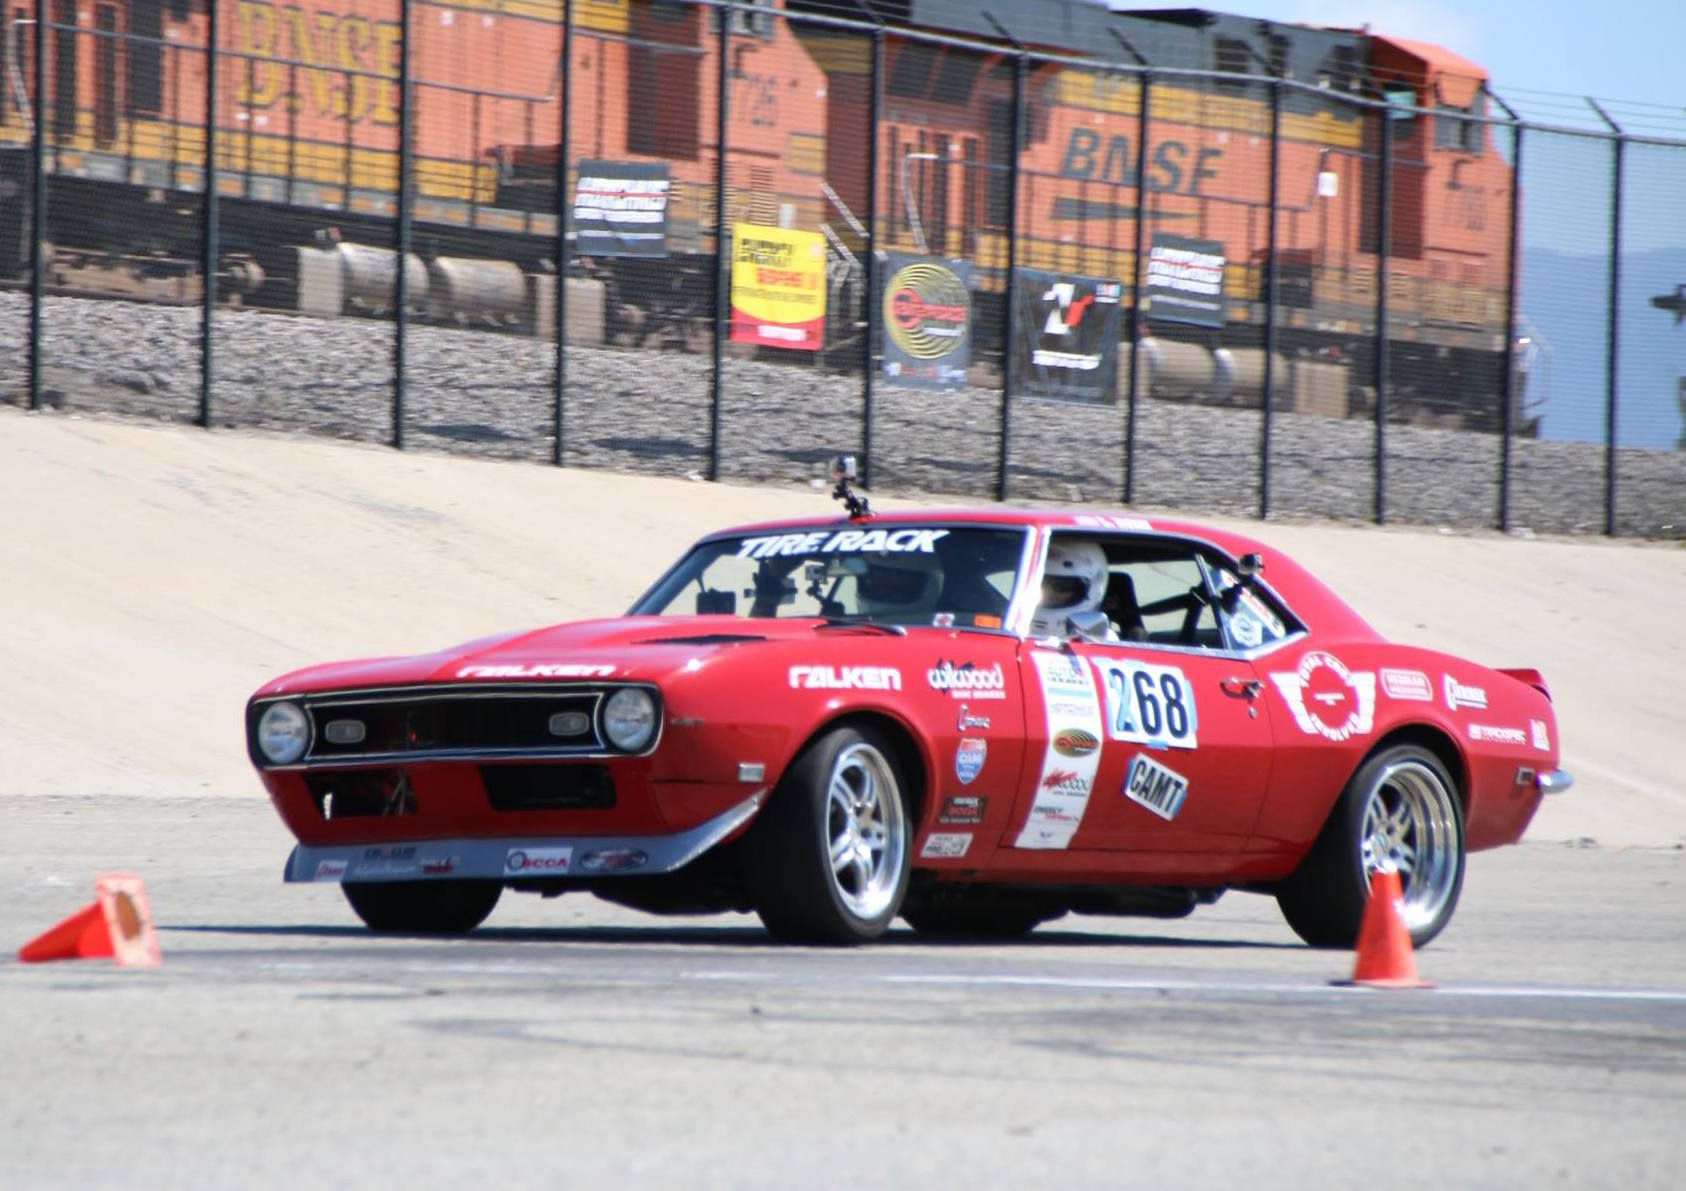 1968 Chevrolet Camaro | Chad Ryker Wins NMCA West Autocross With '68 Camaro on Forgeline DS3 Wheels